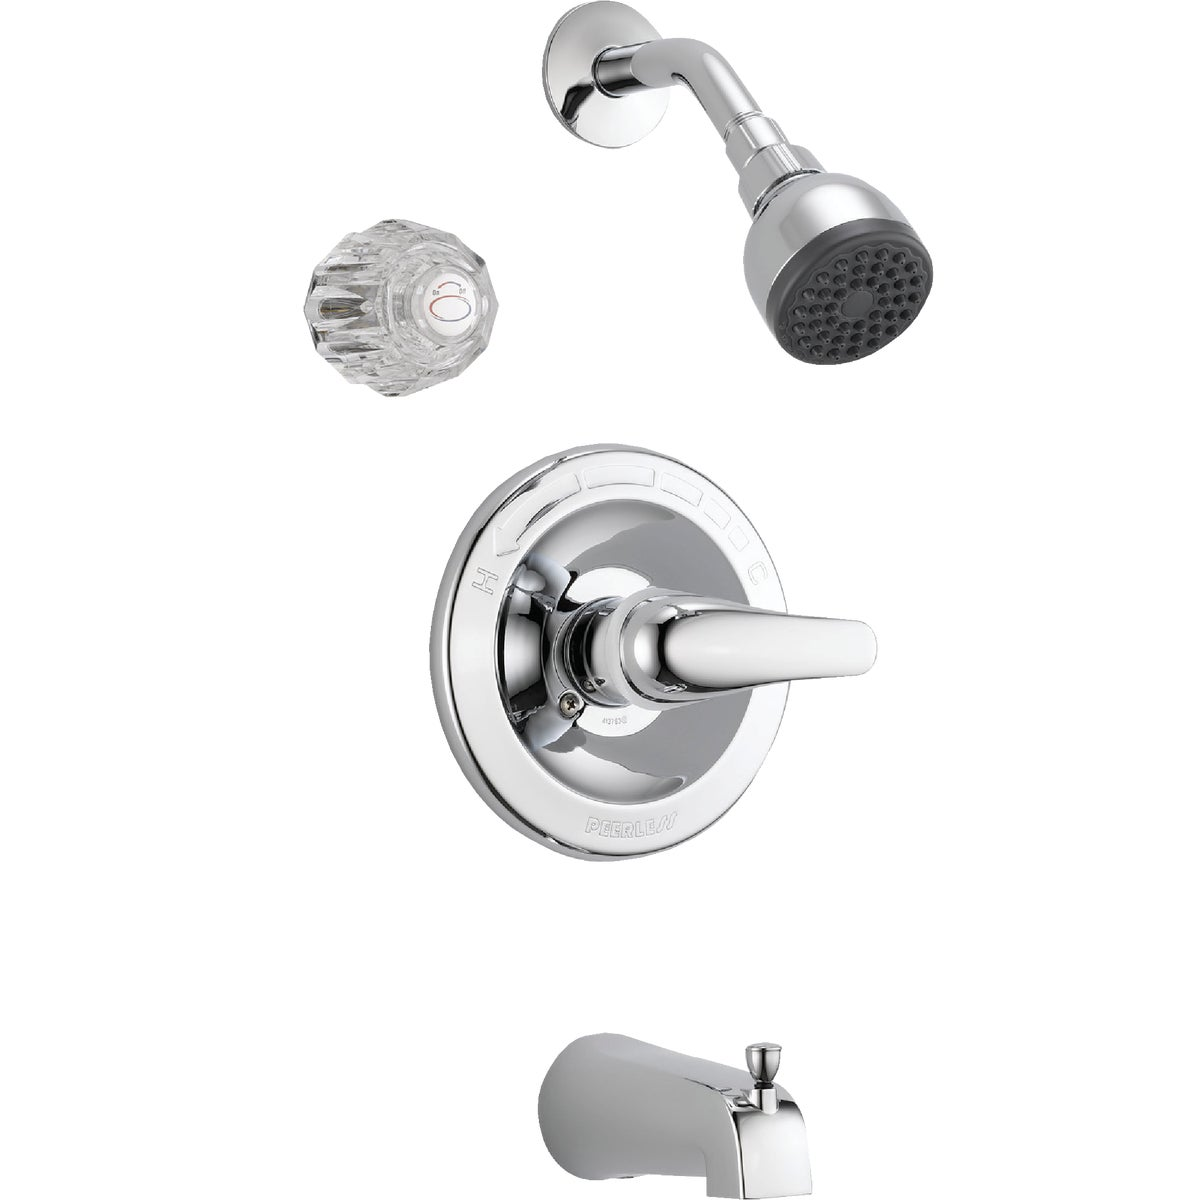 CHROME TUB/SHOWER FAUCET - P188720 by Delta Faucet Co